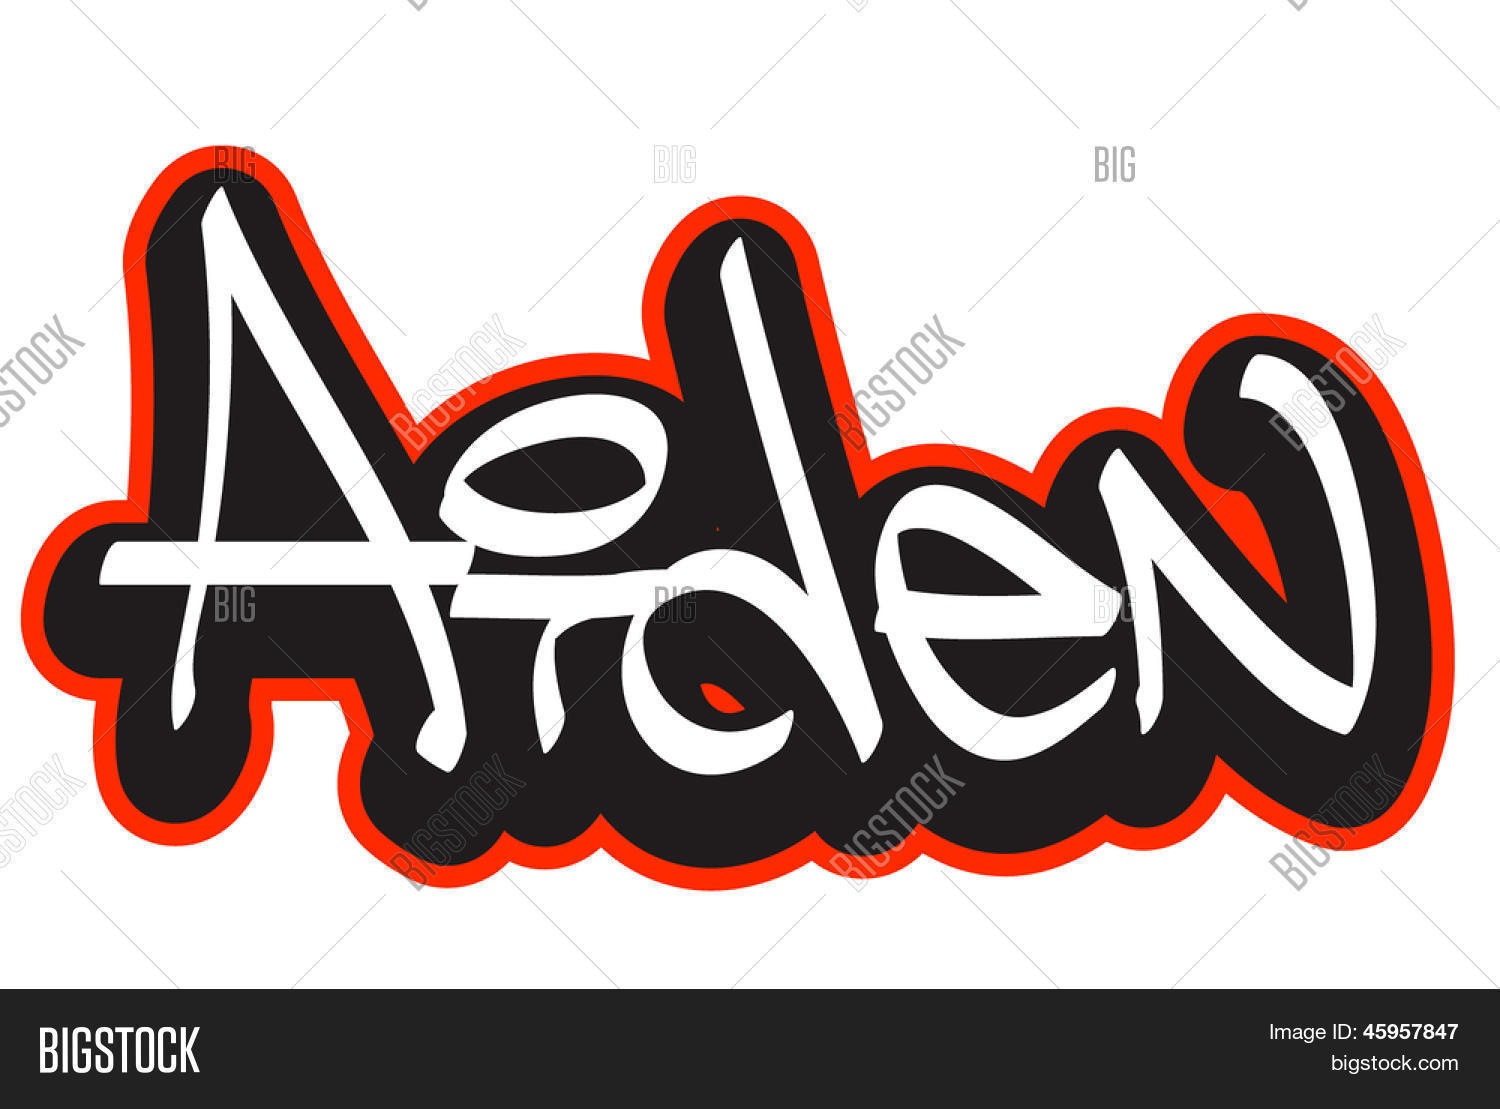 Aiden graffiti font vector photo free trial bigstock aiden graffiti font style name hip hop design template for t shirt thecheapjerseys Image collections